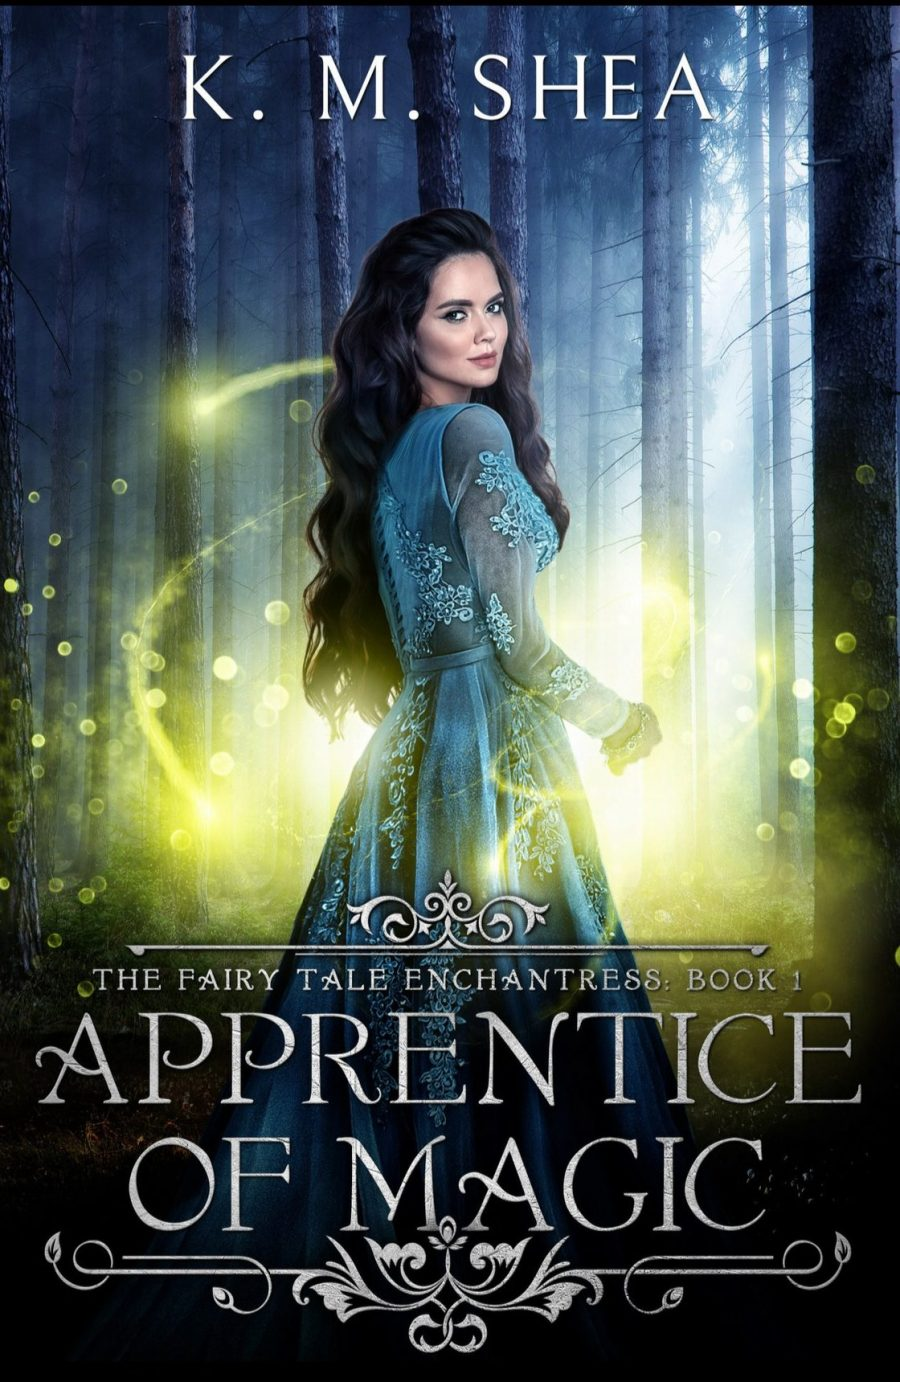 Apprentice of Magic by K.M. Shea – A Book Review